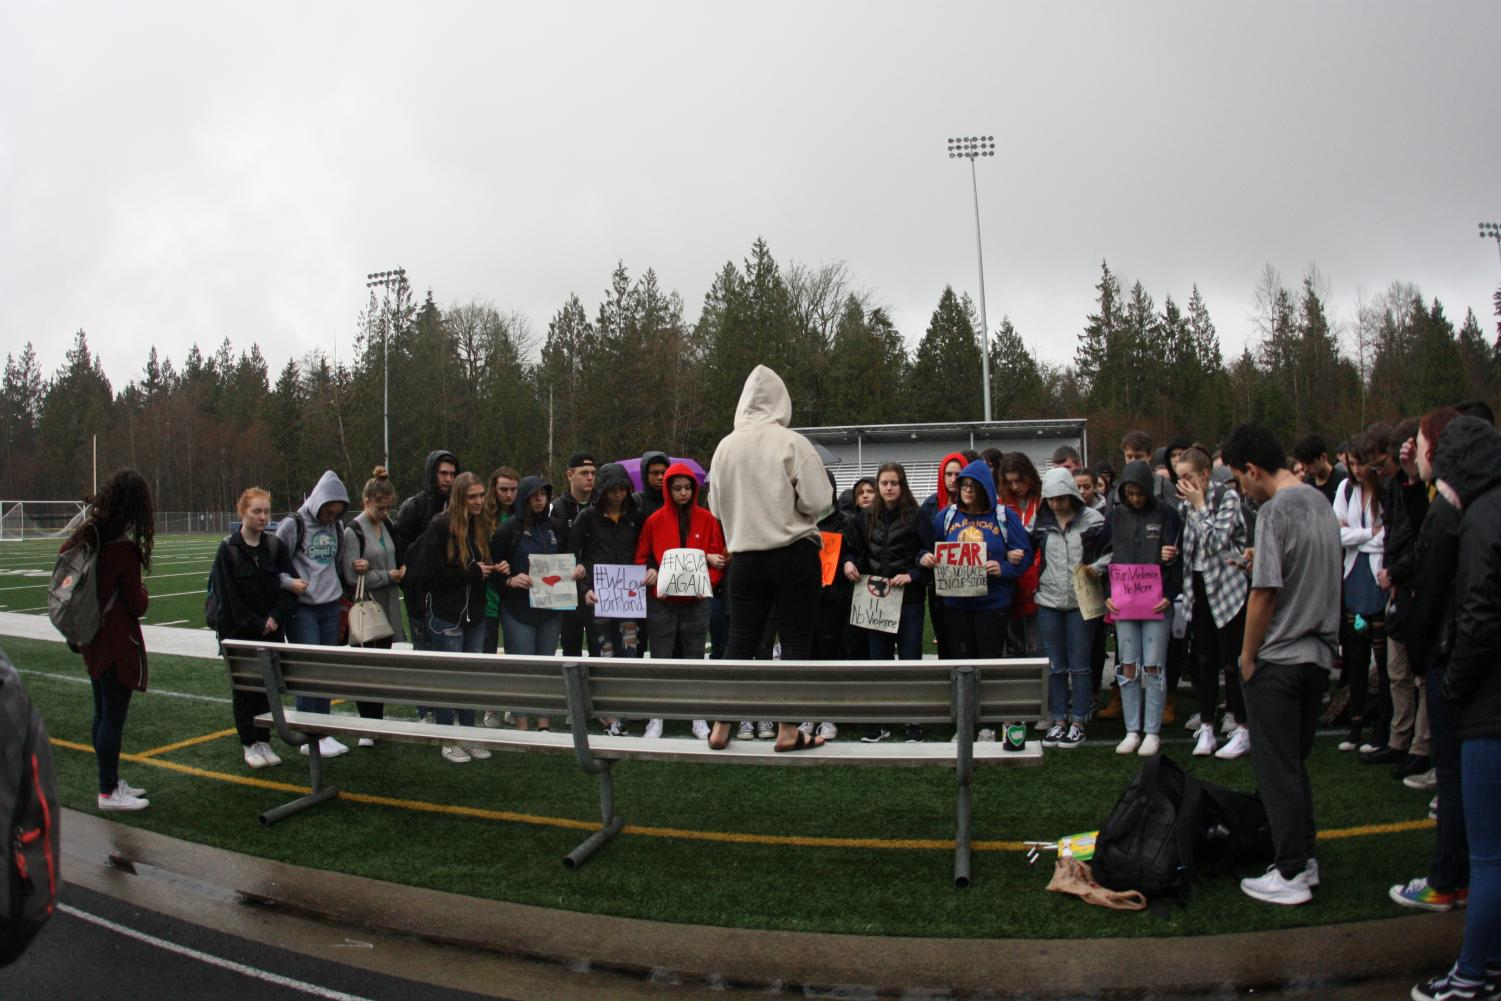 In honor of the Parkland shooting, AHS students walk out on March 14 to take a stand against gun violence in schools.  The student body also protests against all other school shootings, including Columbine.